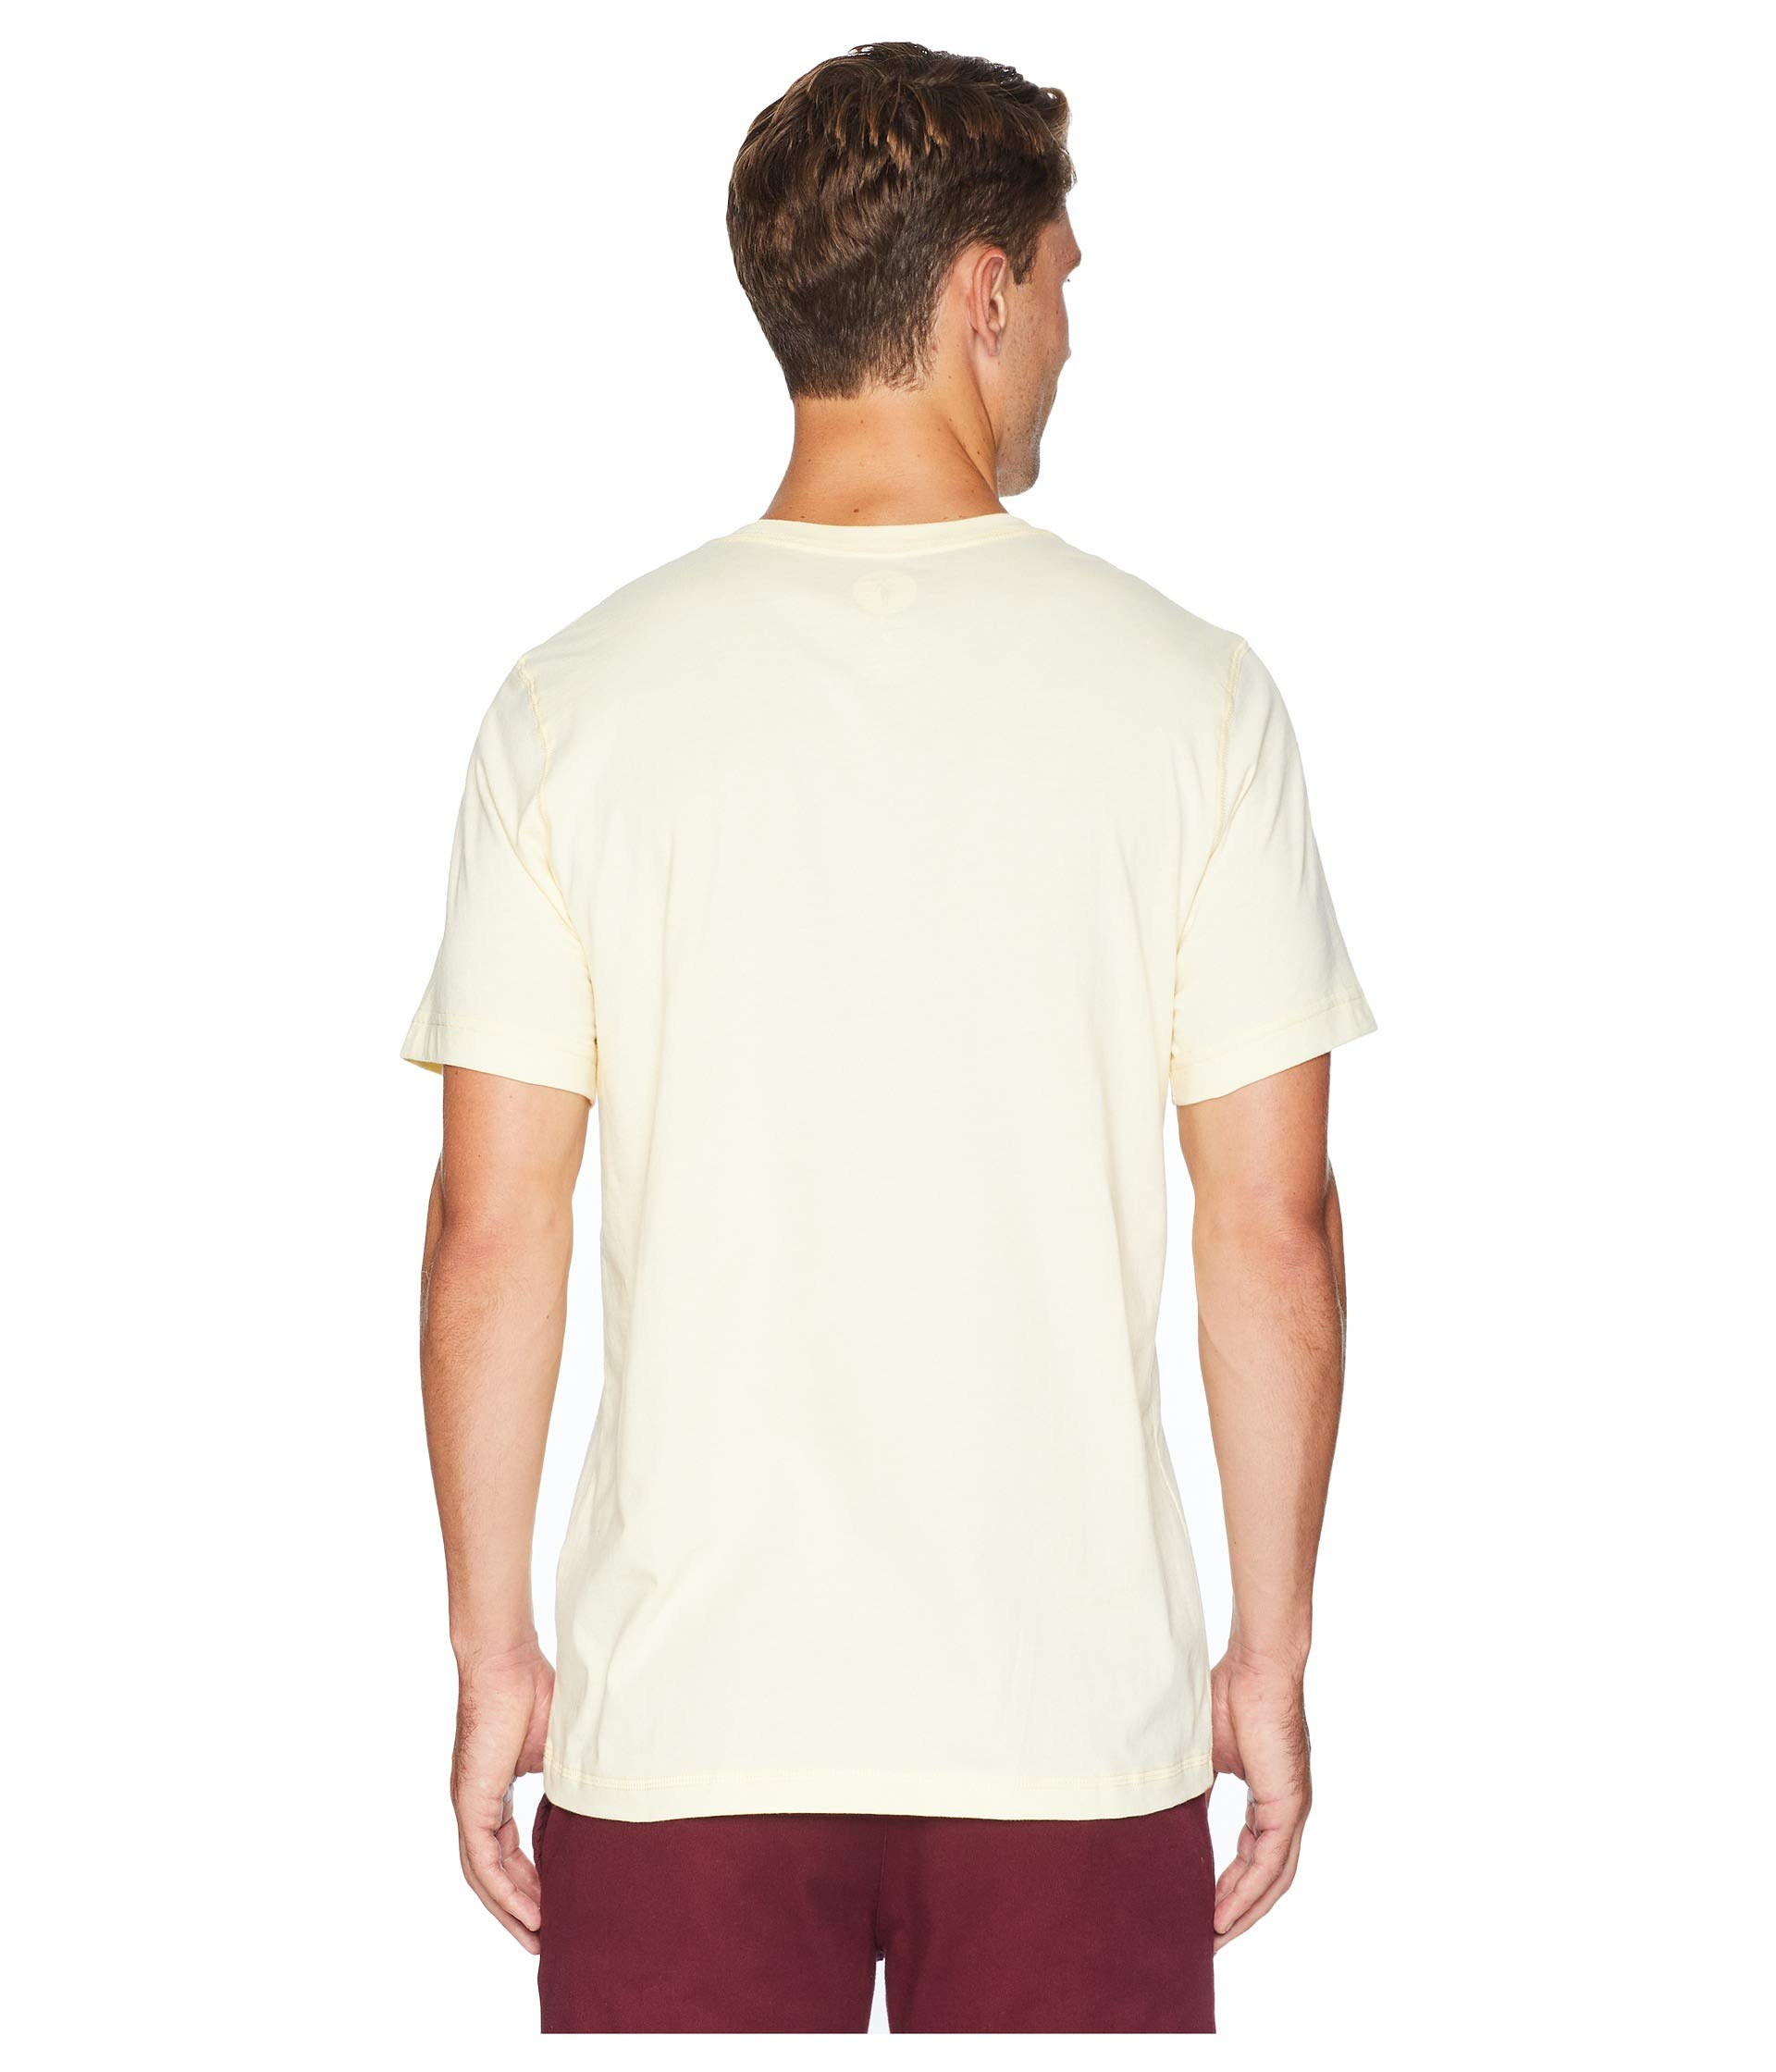 Nose Dawn On Patrol shirt The Yellow T Pale Toes BEwTqFx